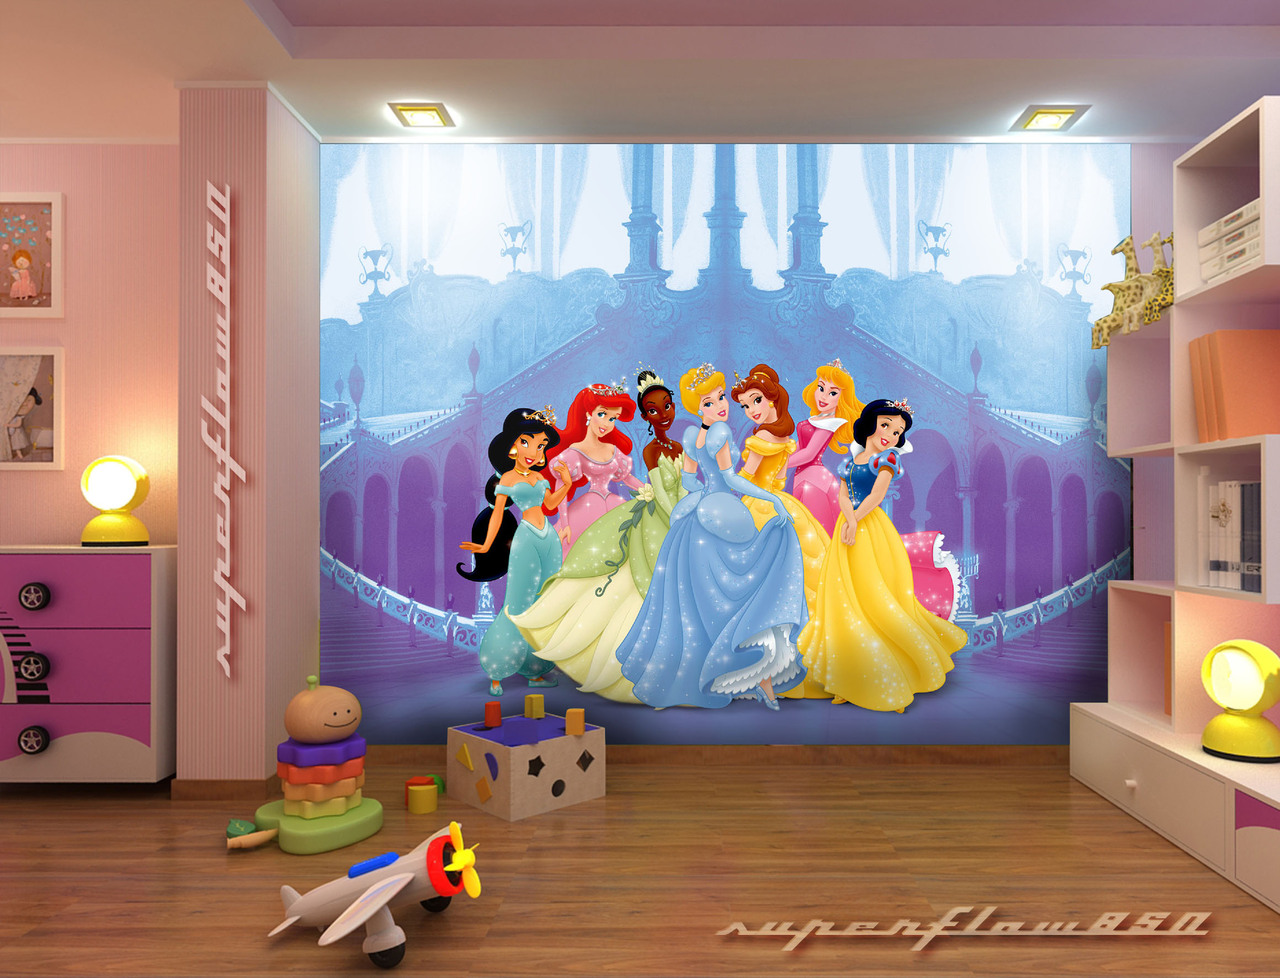 Disney wall murals 2017 grasscloth wallpaper for Children s room mural